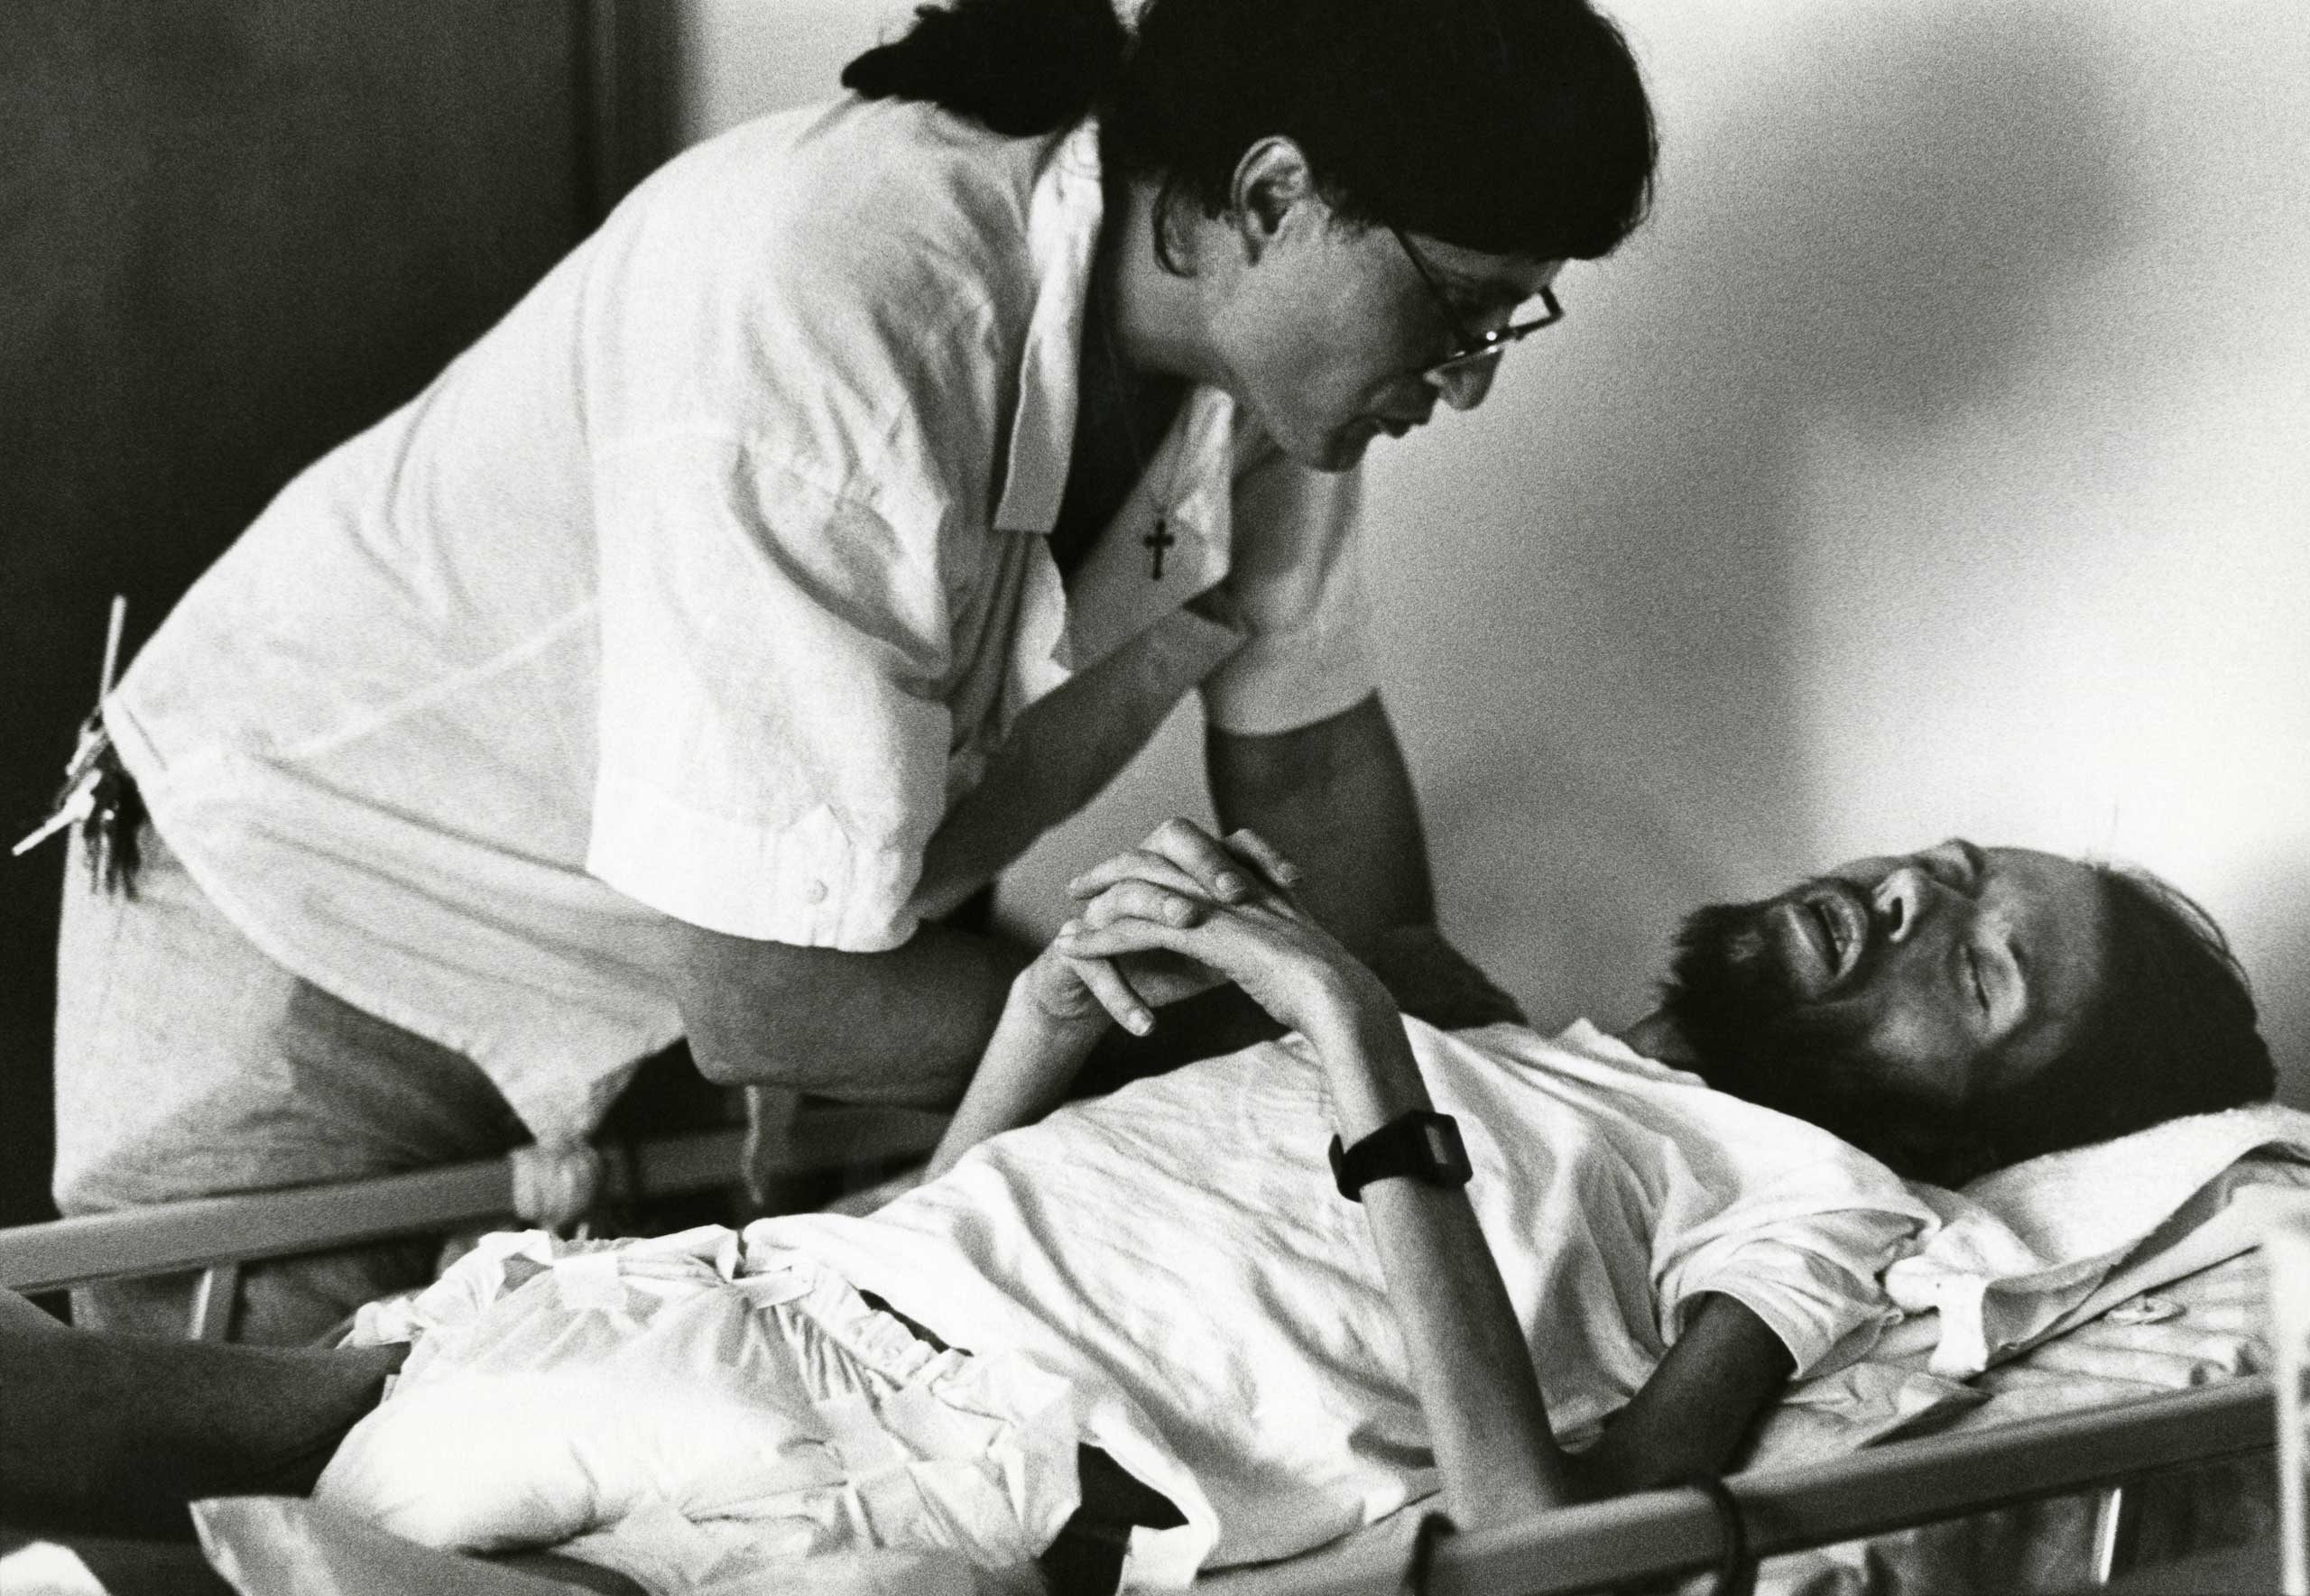 Peta, a volunteer at Pater Noster House in Ohio, cares for a dying David Kirby, 1990.